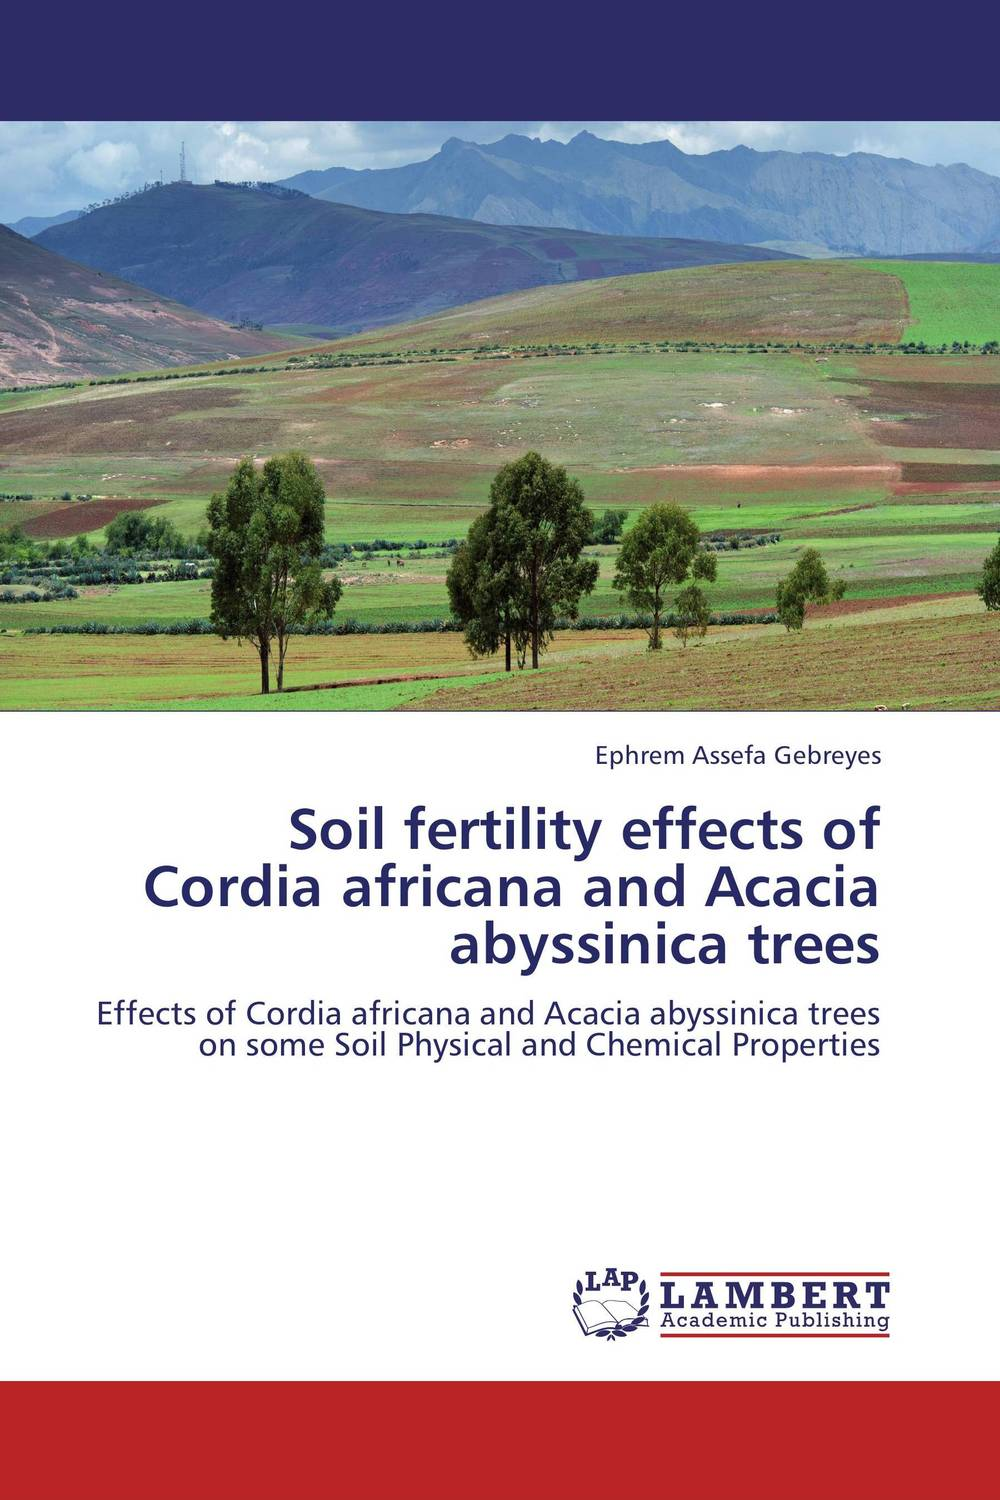 Soil fertility effects of Cordia africana and Acacia abyssinica trees coloring of trees